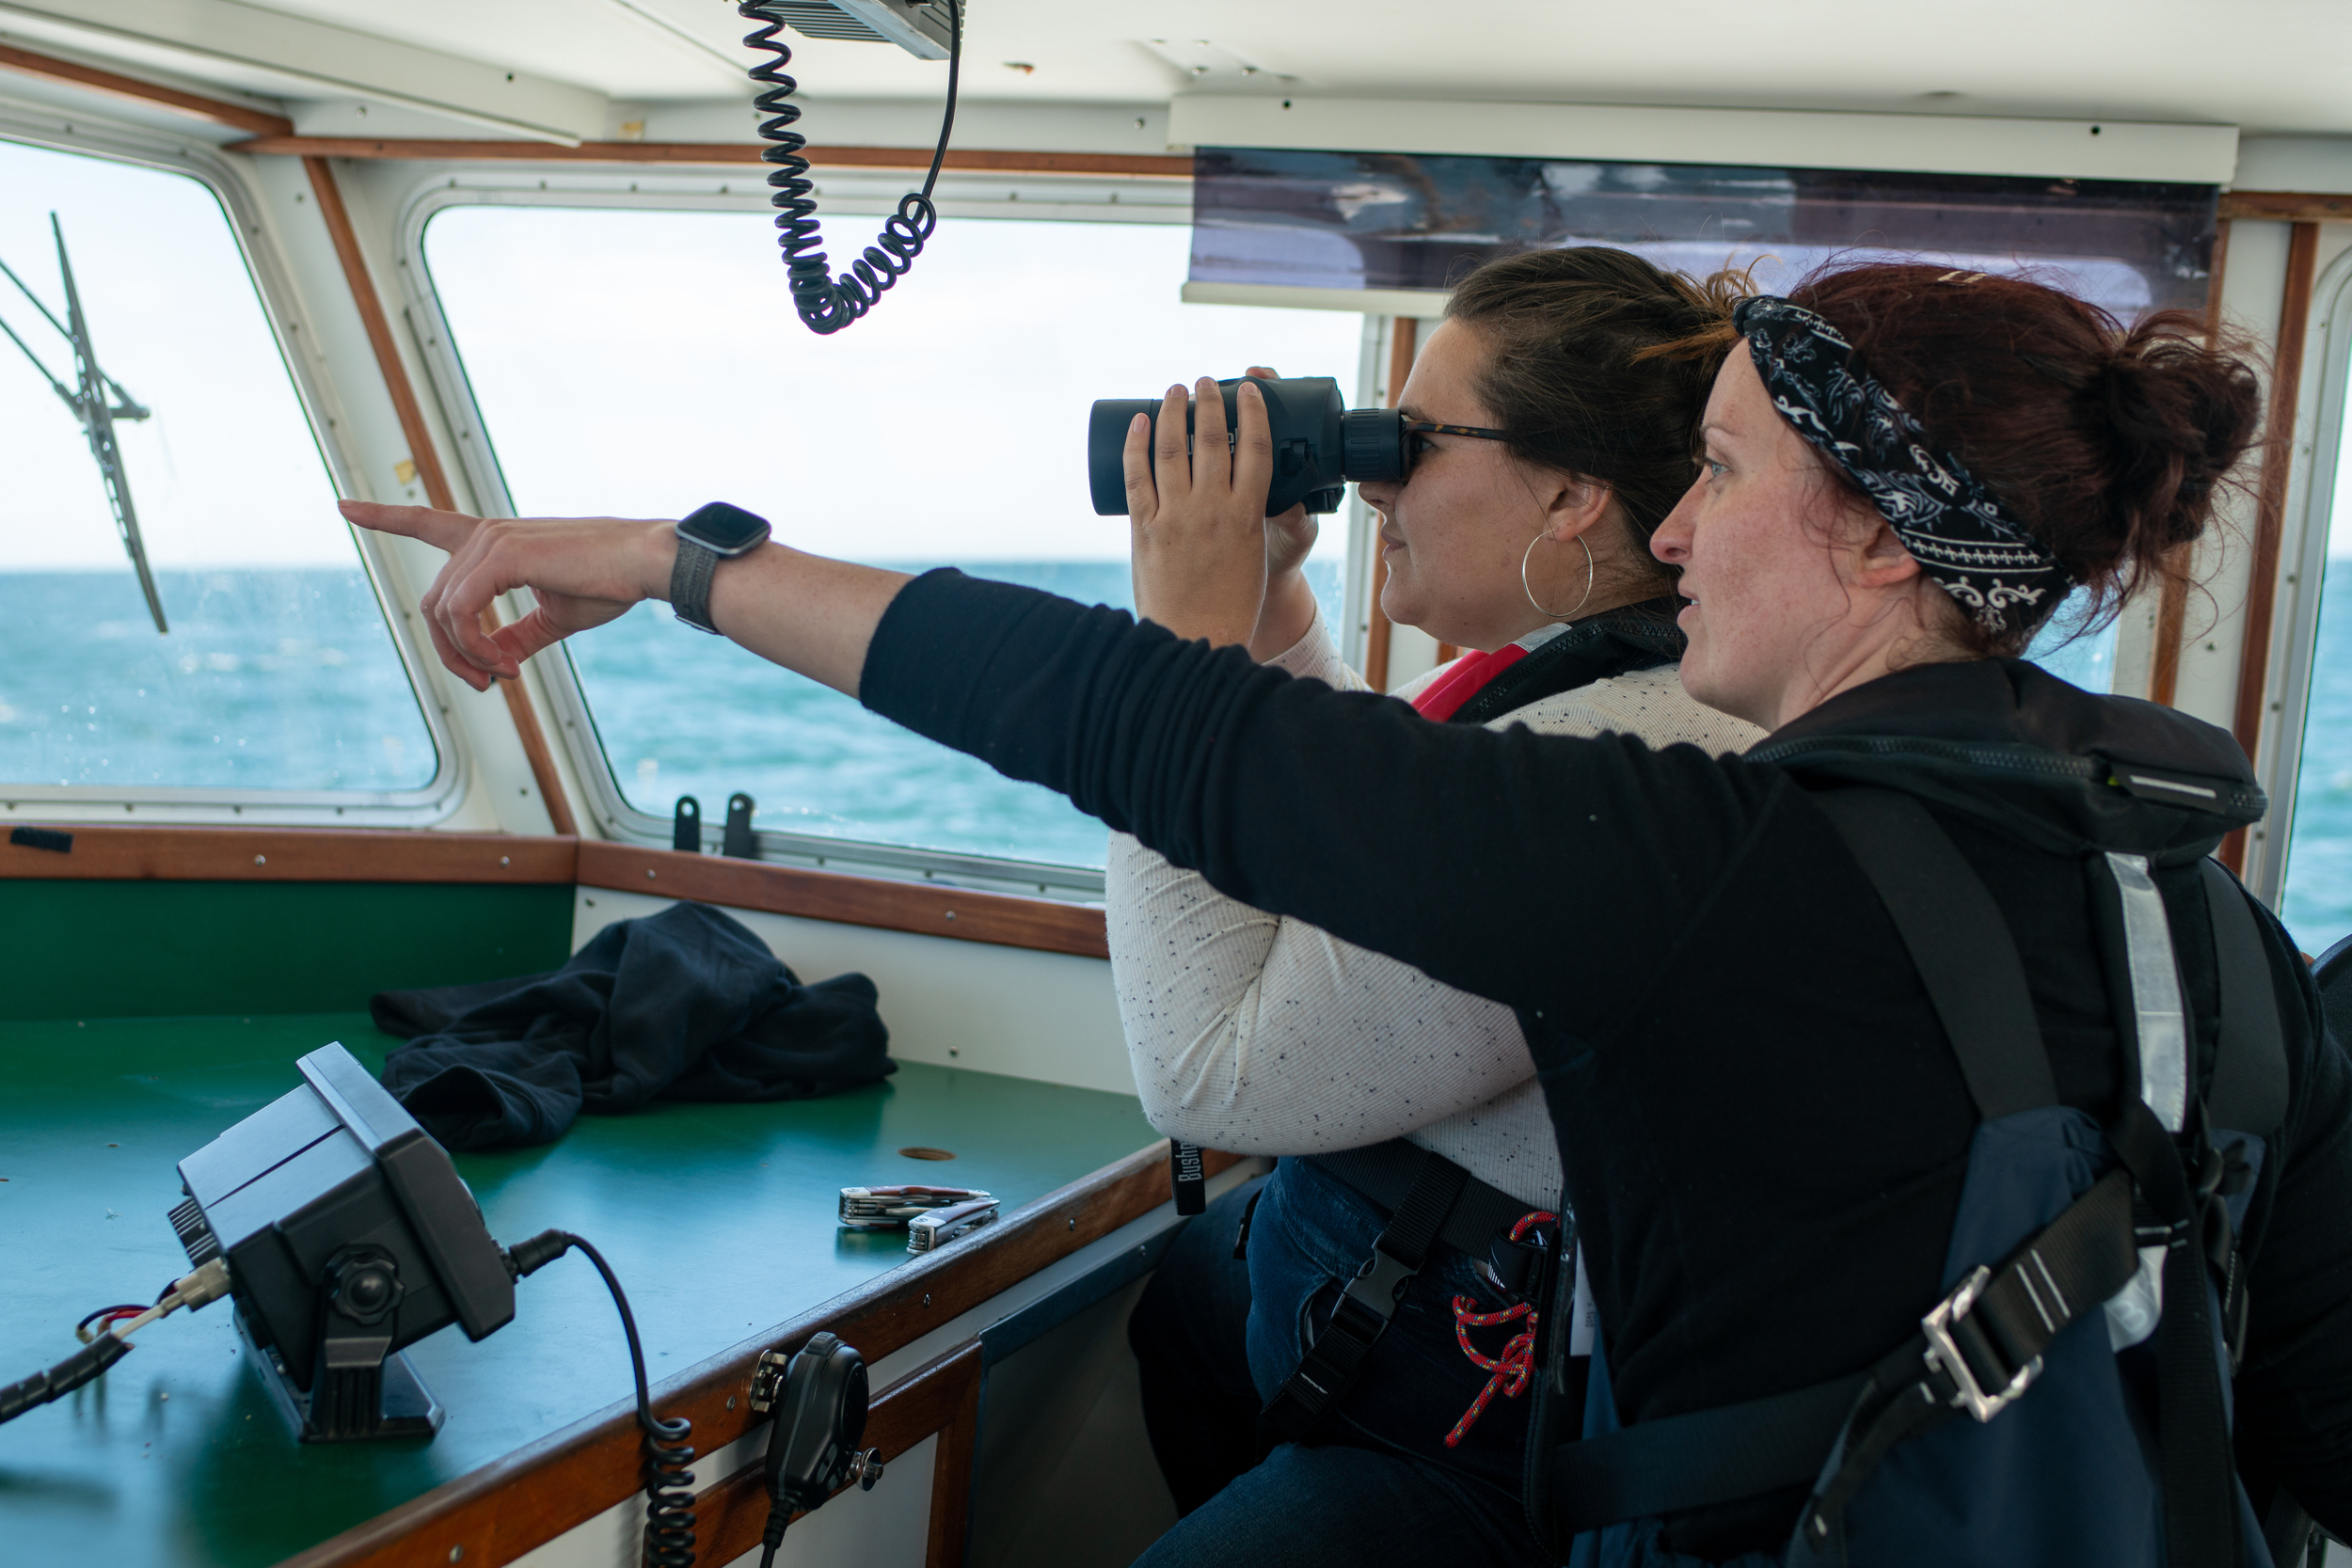 Two crew members watching the ocean from the bridge of a ship. One looks through binoculars while the other points to the horizon.